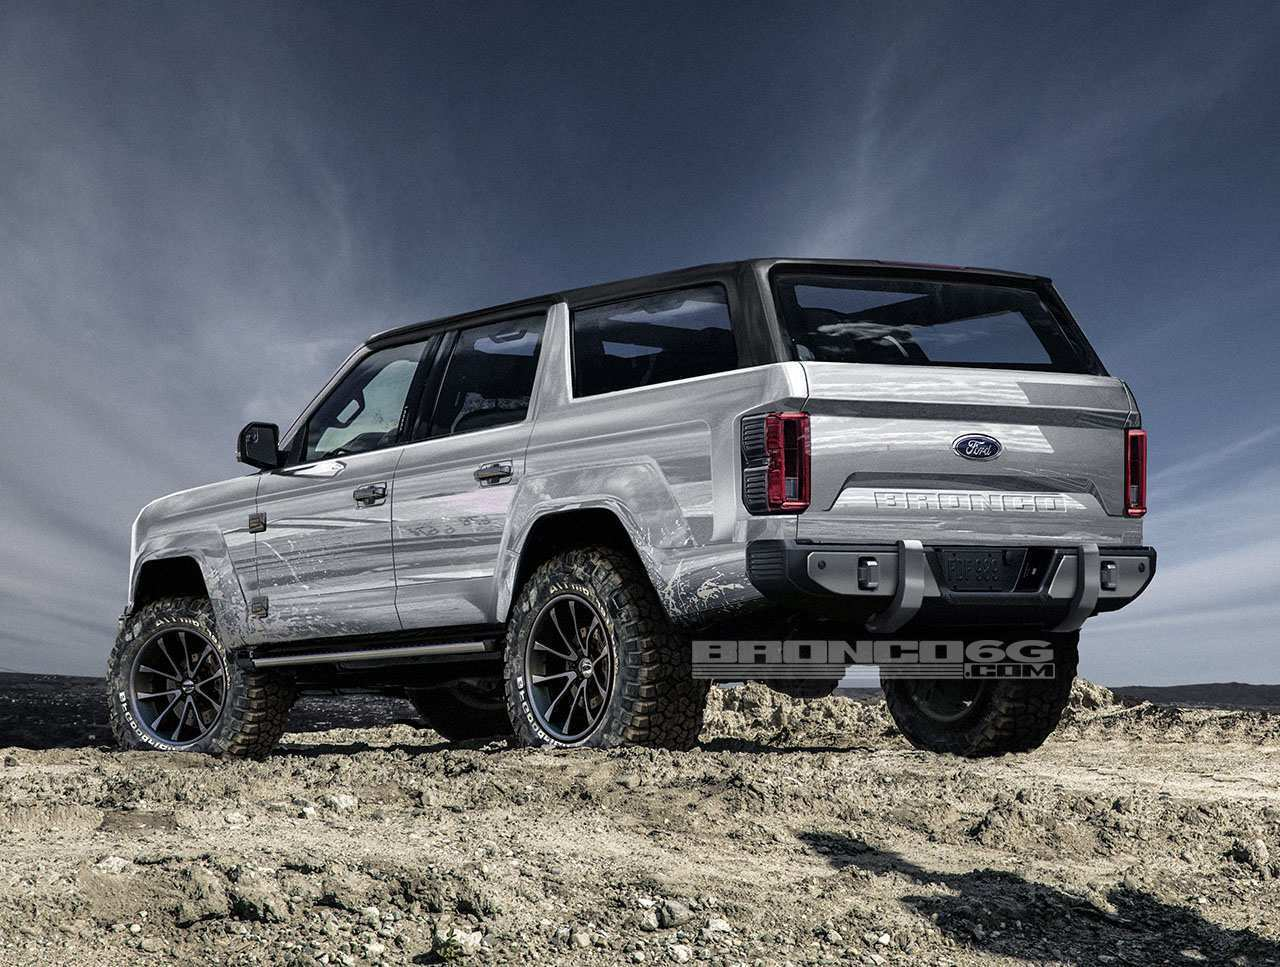 19 All New 2020 Ford Bronco Official Pictures Performance by 2020 Ford Bronco Official Pictures